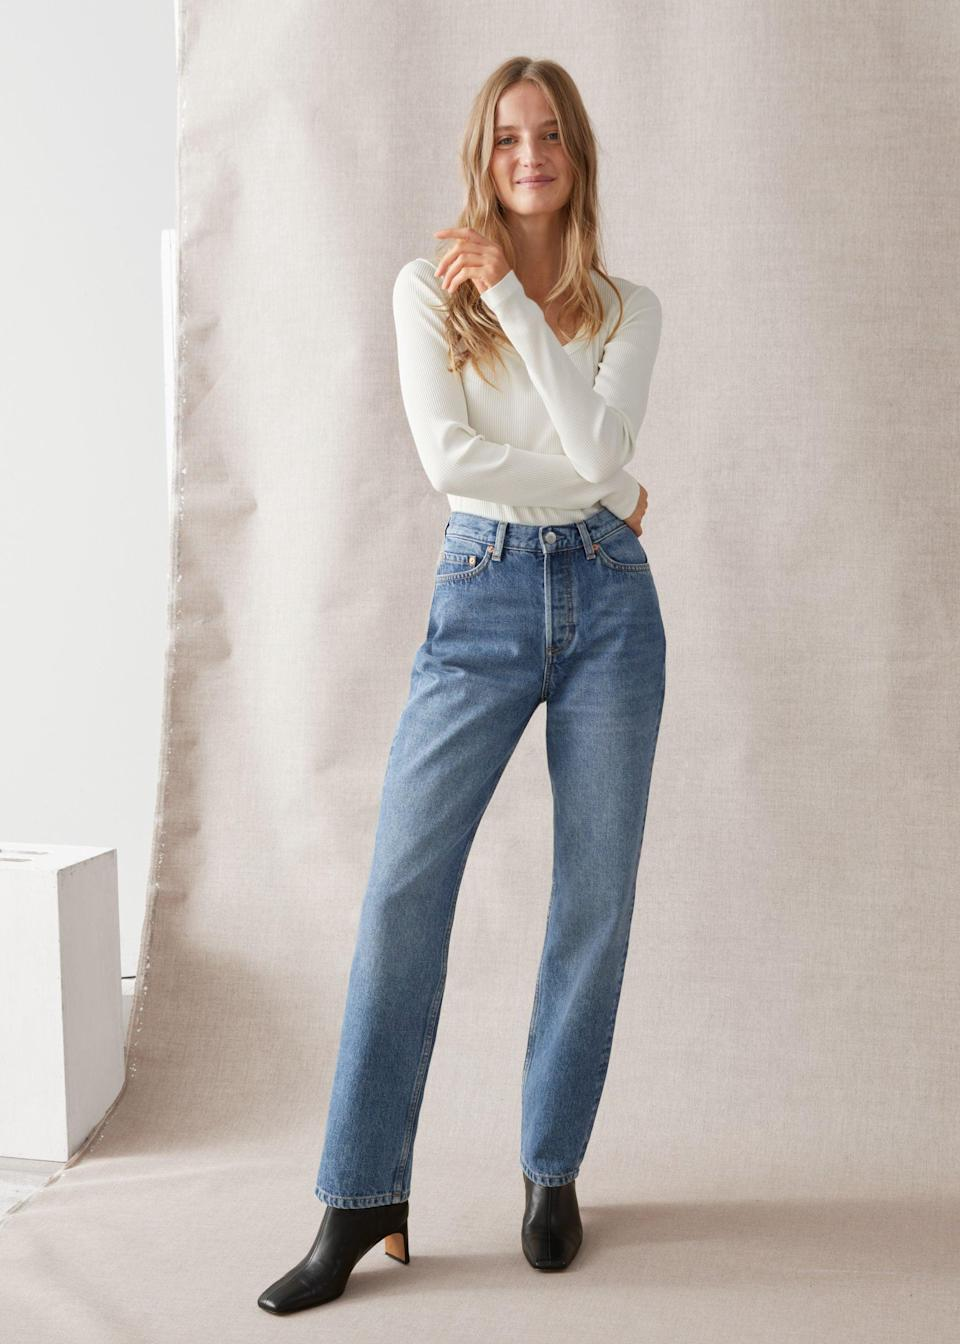 "<br><br><strong>& Other Stories</strong> Keeper Cut Jeans, $, available at <a href=""https://go.skimresources.com/?id=30283X879131&url=https%3A%2F%2Fwww.stories.com%2Fen_usd%2Fclothing%2Fjeans%2Fstraight%2Fproduct.keeper-cut-jeans-blue.0899001002.html"" rel=""nofollow noopener"" target=""_blank"" data-ylk=""slk:& Other Stories"" class=""link rapid-noclick-resp"">& Other Stories</a>"